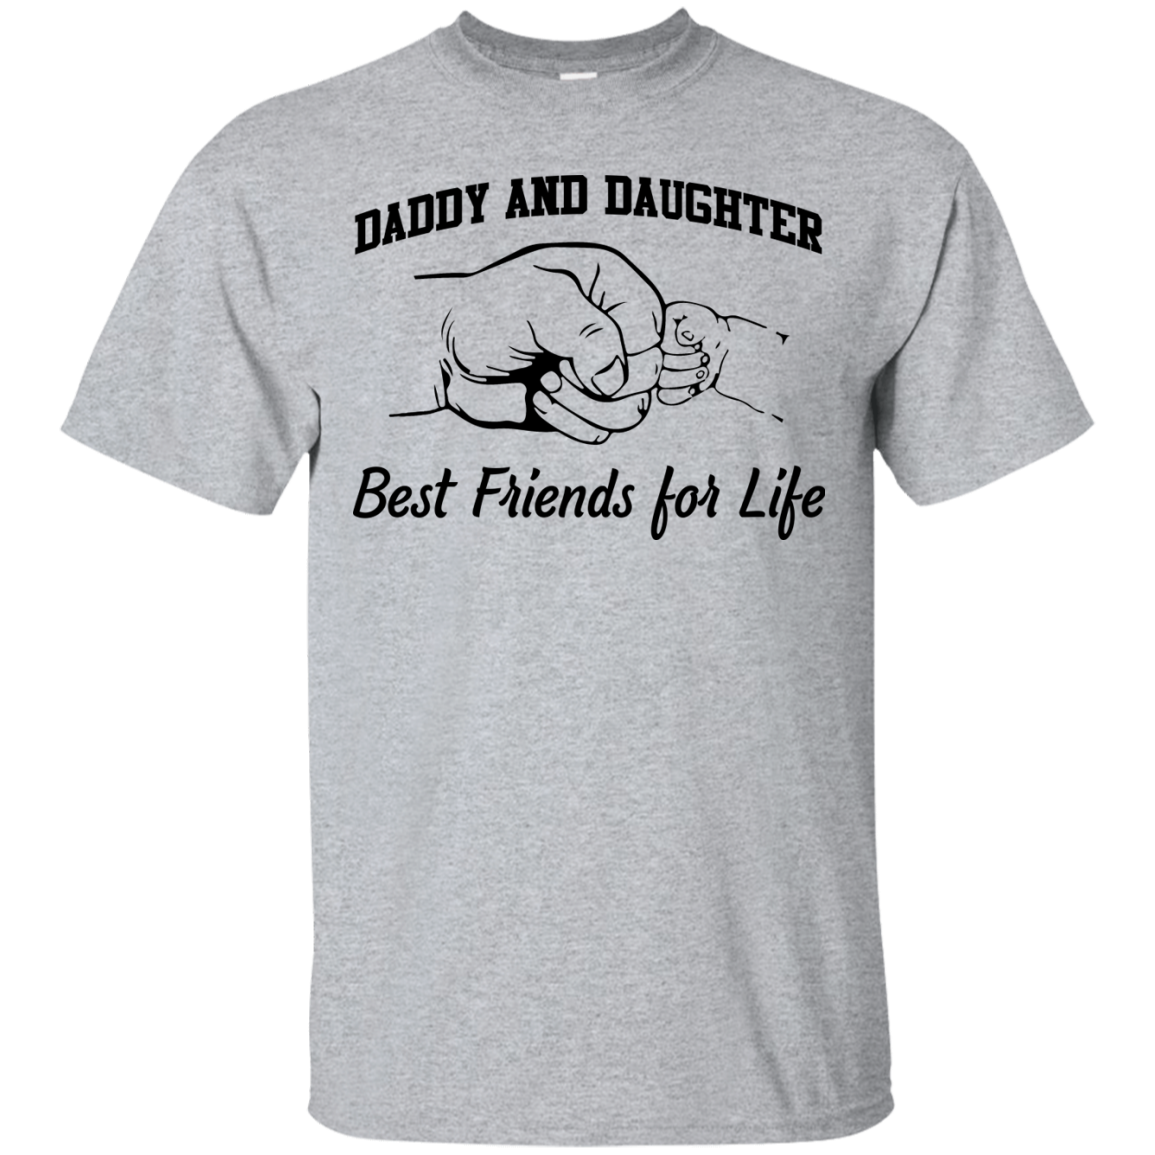 Daddy and Daughter best friends for life T shirt,Tank top & Hoodies